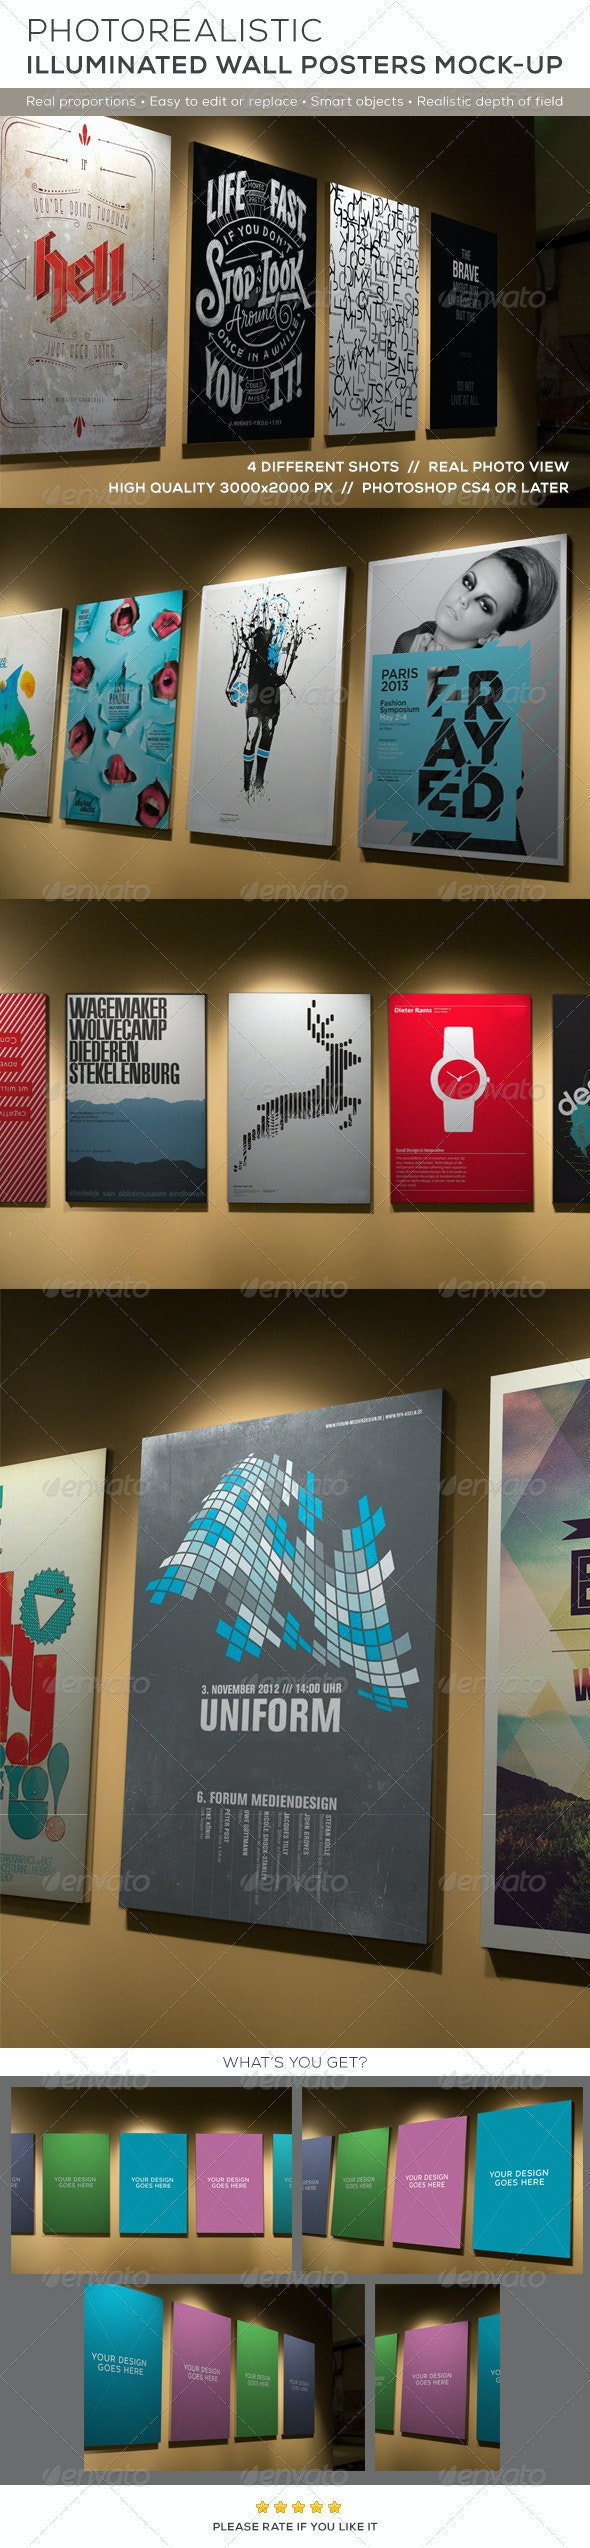 Posters Mock-up on Illuminated Wall - Posters Print